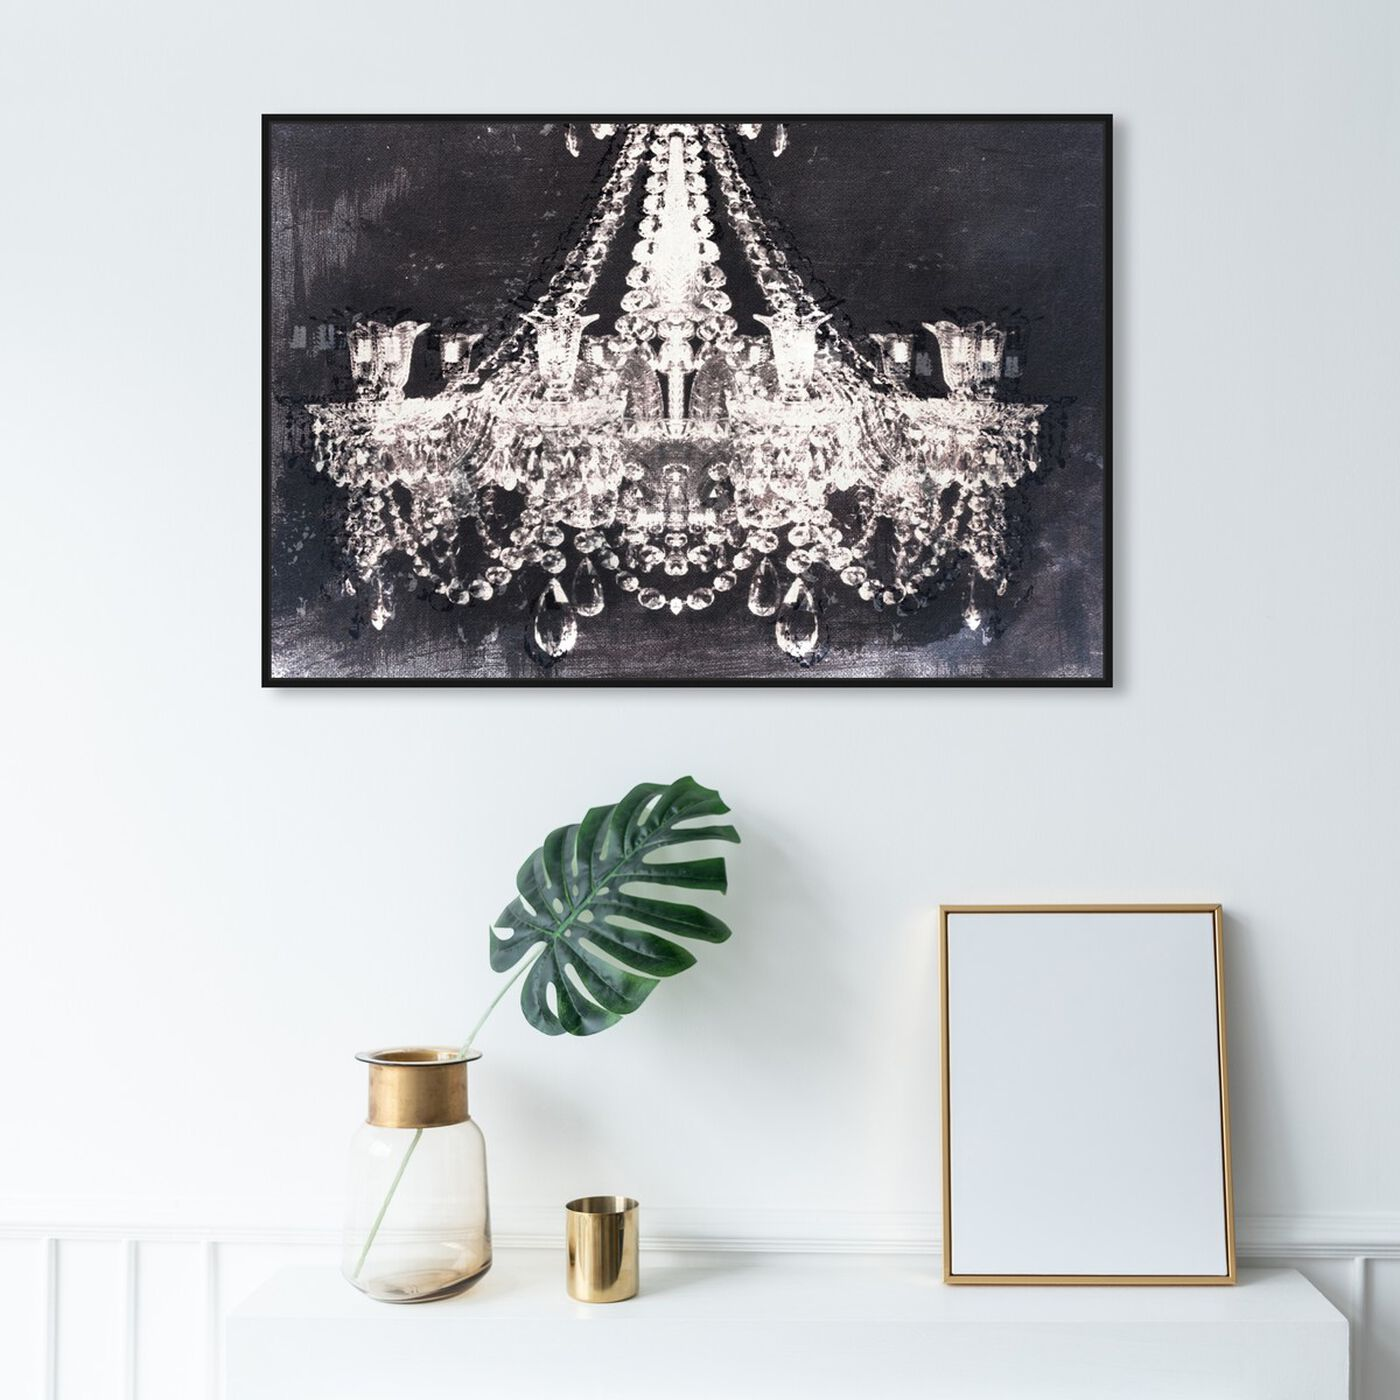 Hanging view of Dramatic Entrance Night featuring fashion and glam and chandeliers art.